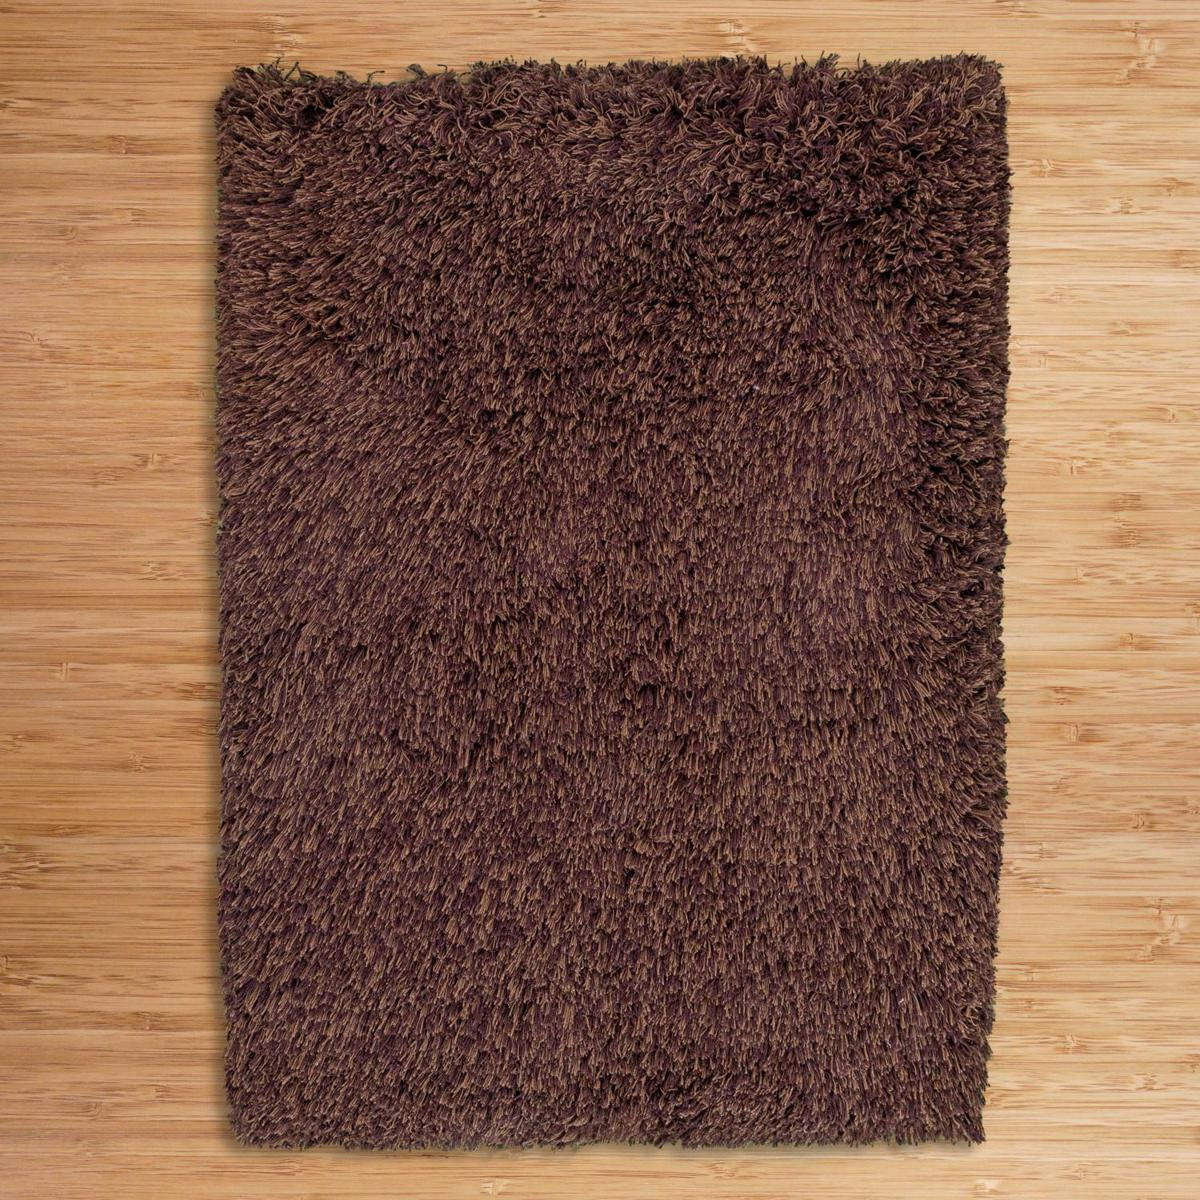 Highlander Shaggy Rug Mixed Brown 110x170cm 2